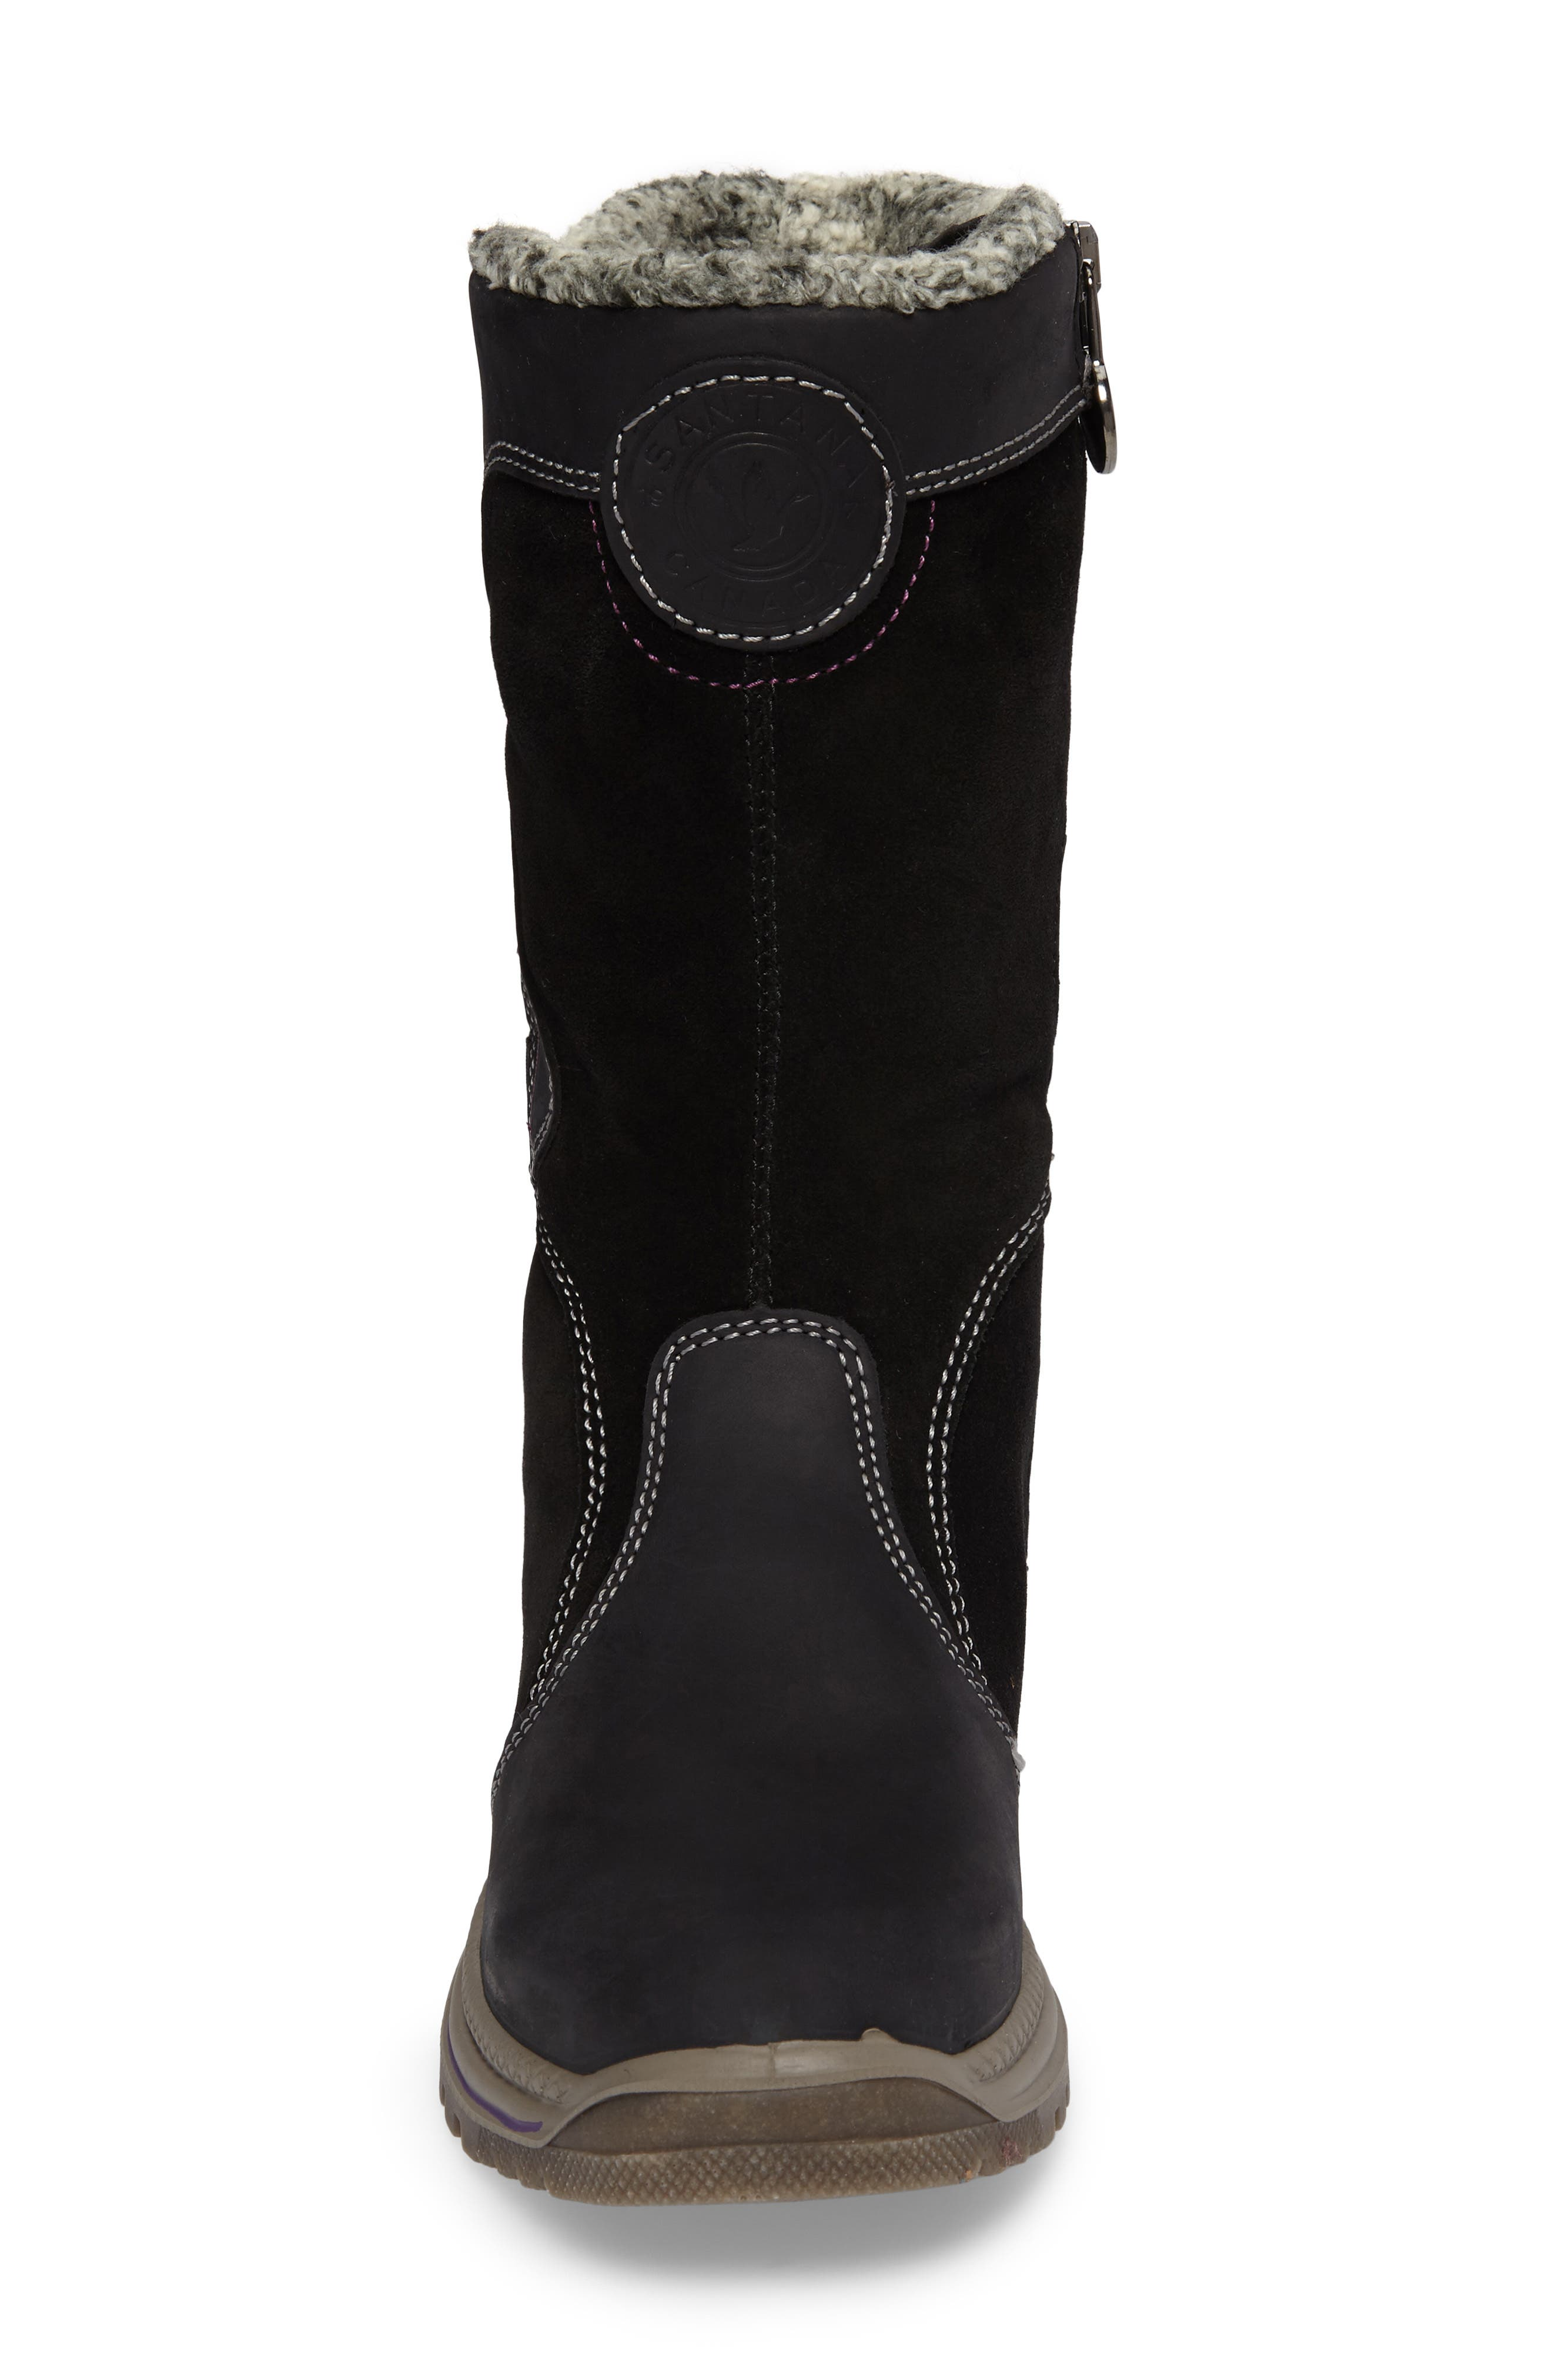 Mayer Faux Fur Lined Waterproof Boot,                             Alternate thumbnail 4, color,                             Black Leather